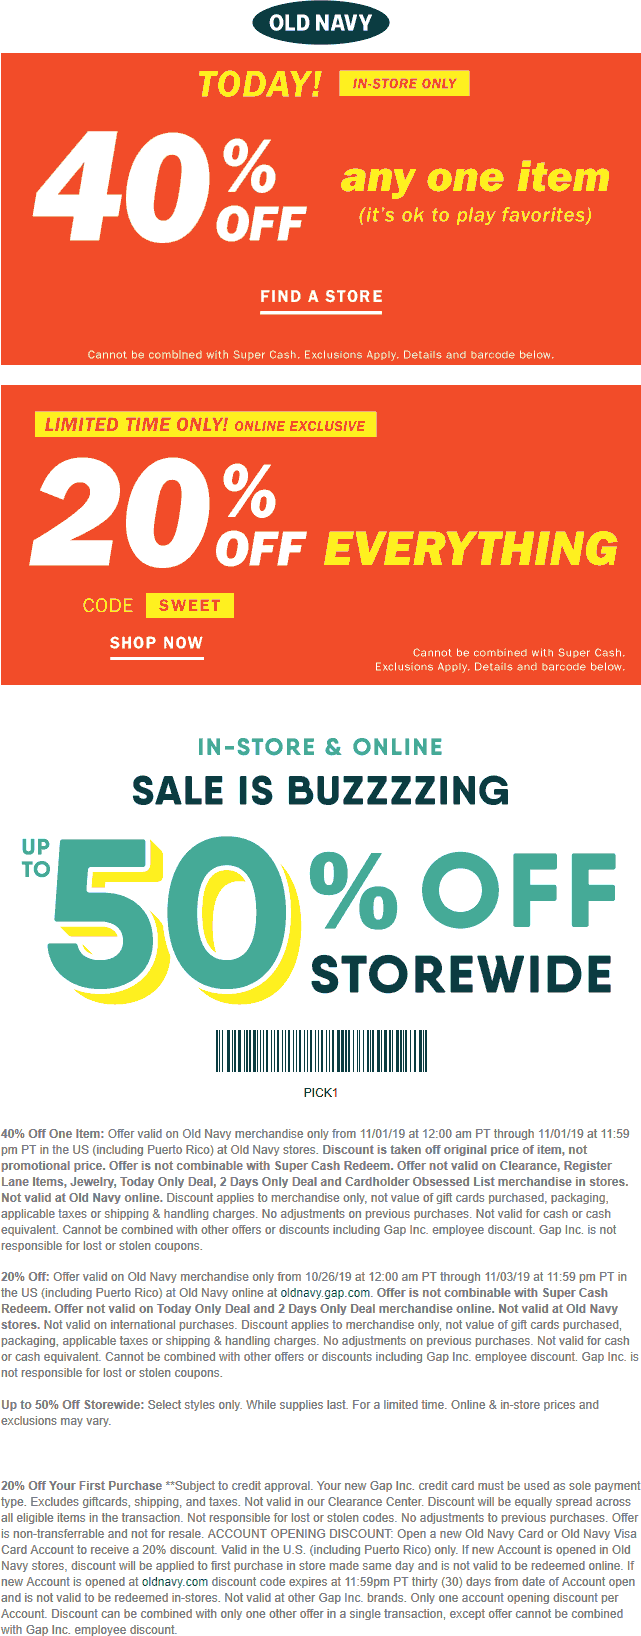 Old Navy Coupon January 2020 40% off a single item today at Old Navy, or 20% off everything online via promo code SWEET